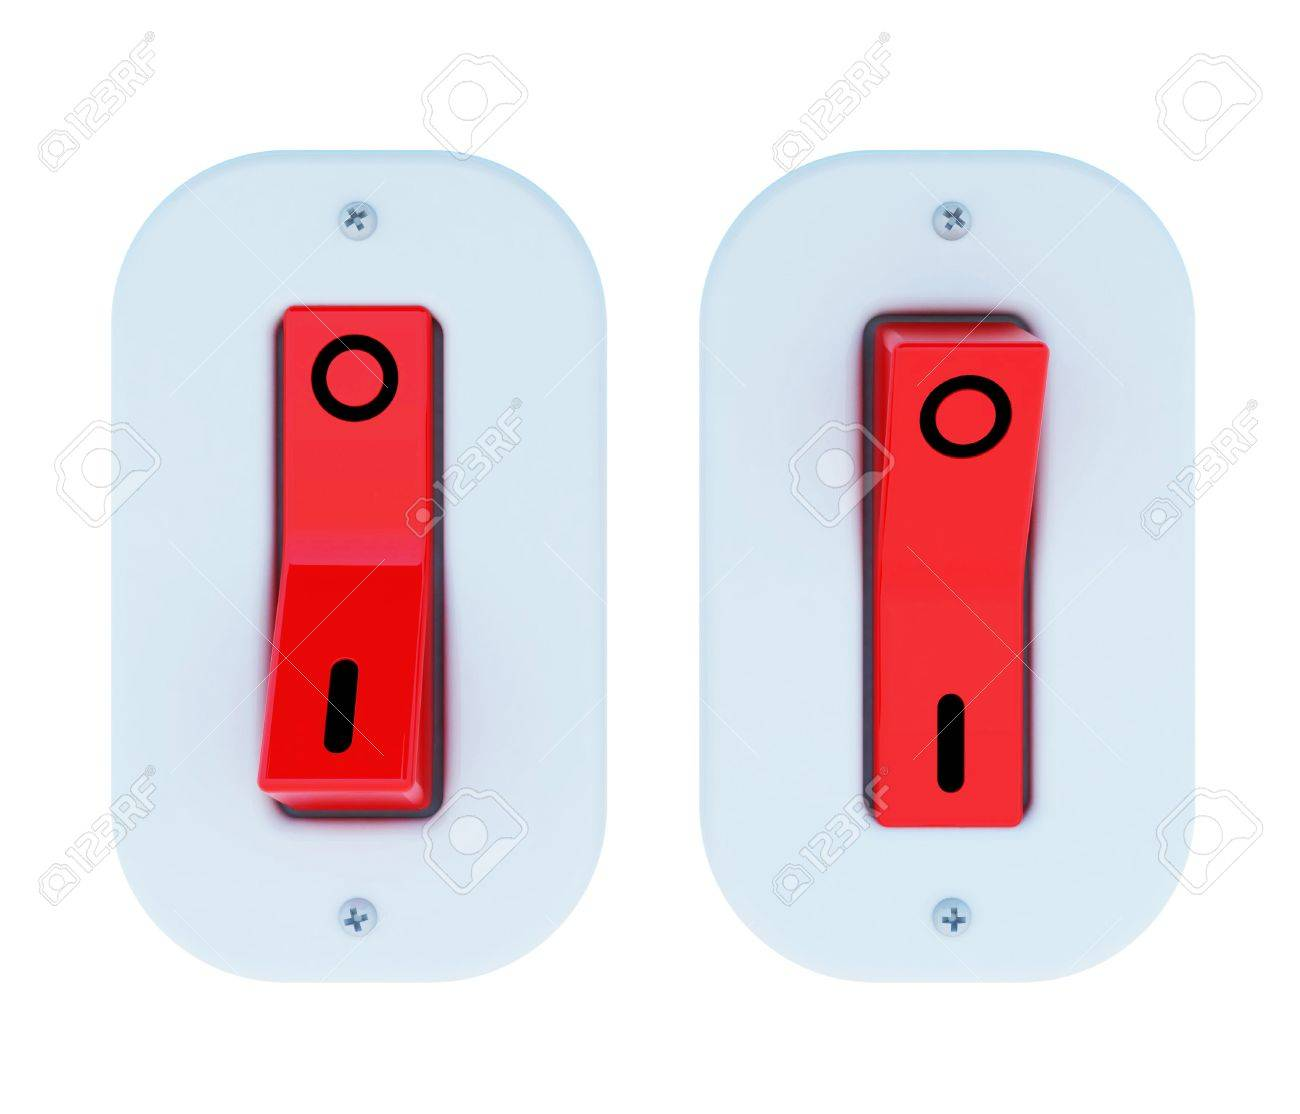 List Of Synonyms And Antonyms Of The Word On Off Symbols Electrical